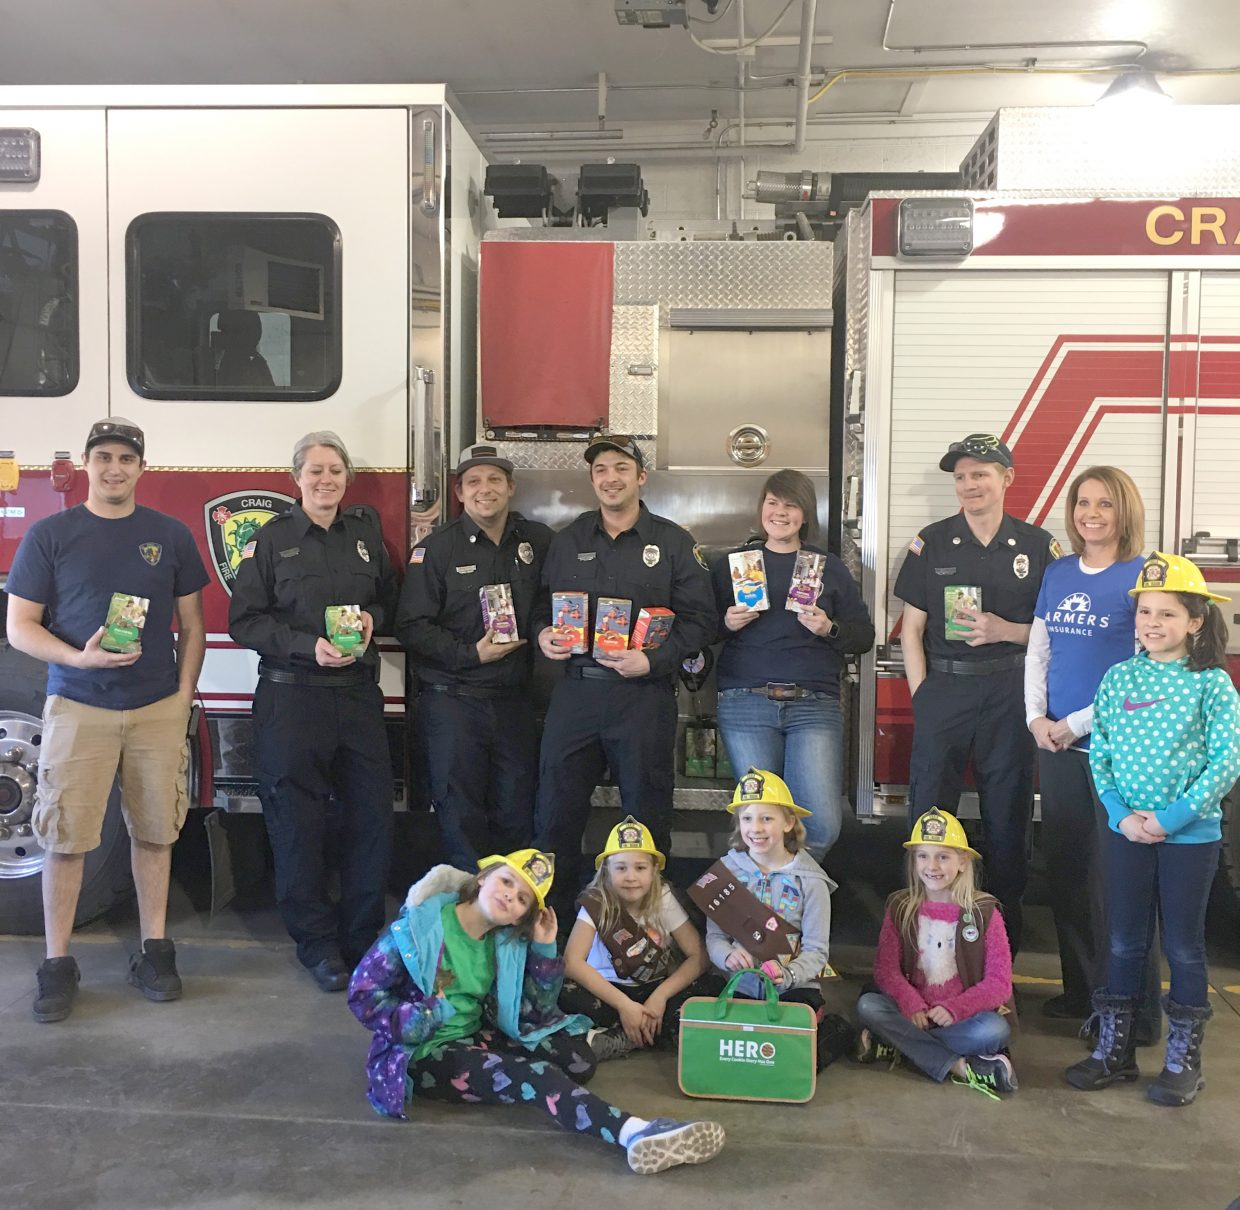 Farmers Insurance Agent Debbie Montgomery helped Haley Duran, Madison Doolin, Audrey Laehr, Xya McMahon and Josie Terry, all of Girl Scout Troop Number 16185, deliver cookies to Craig Fire/Rescue personnel in early March.